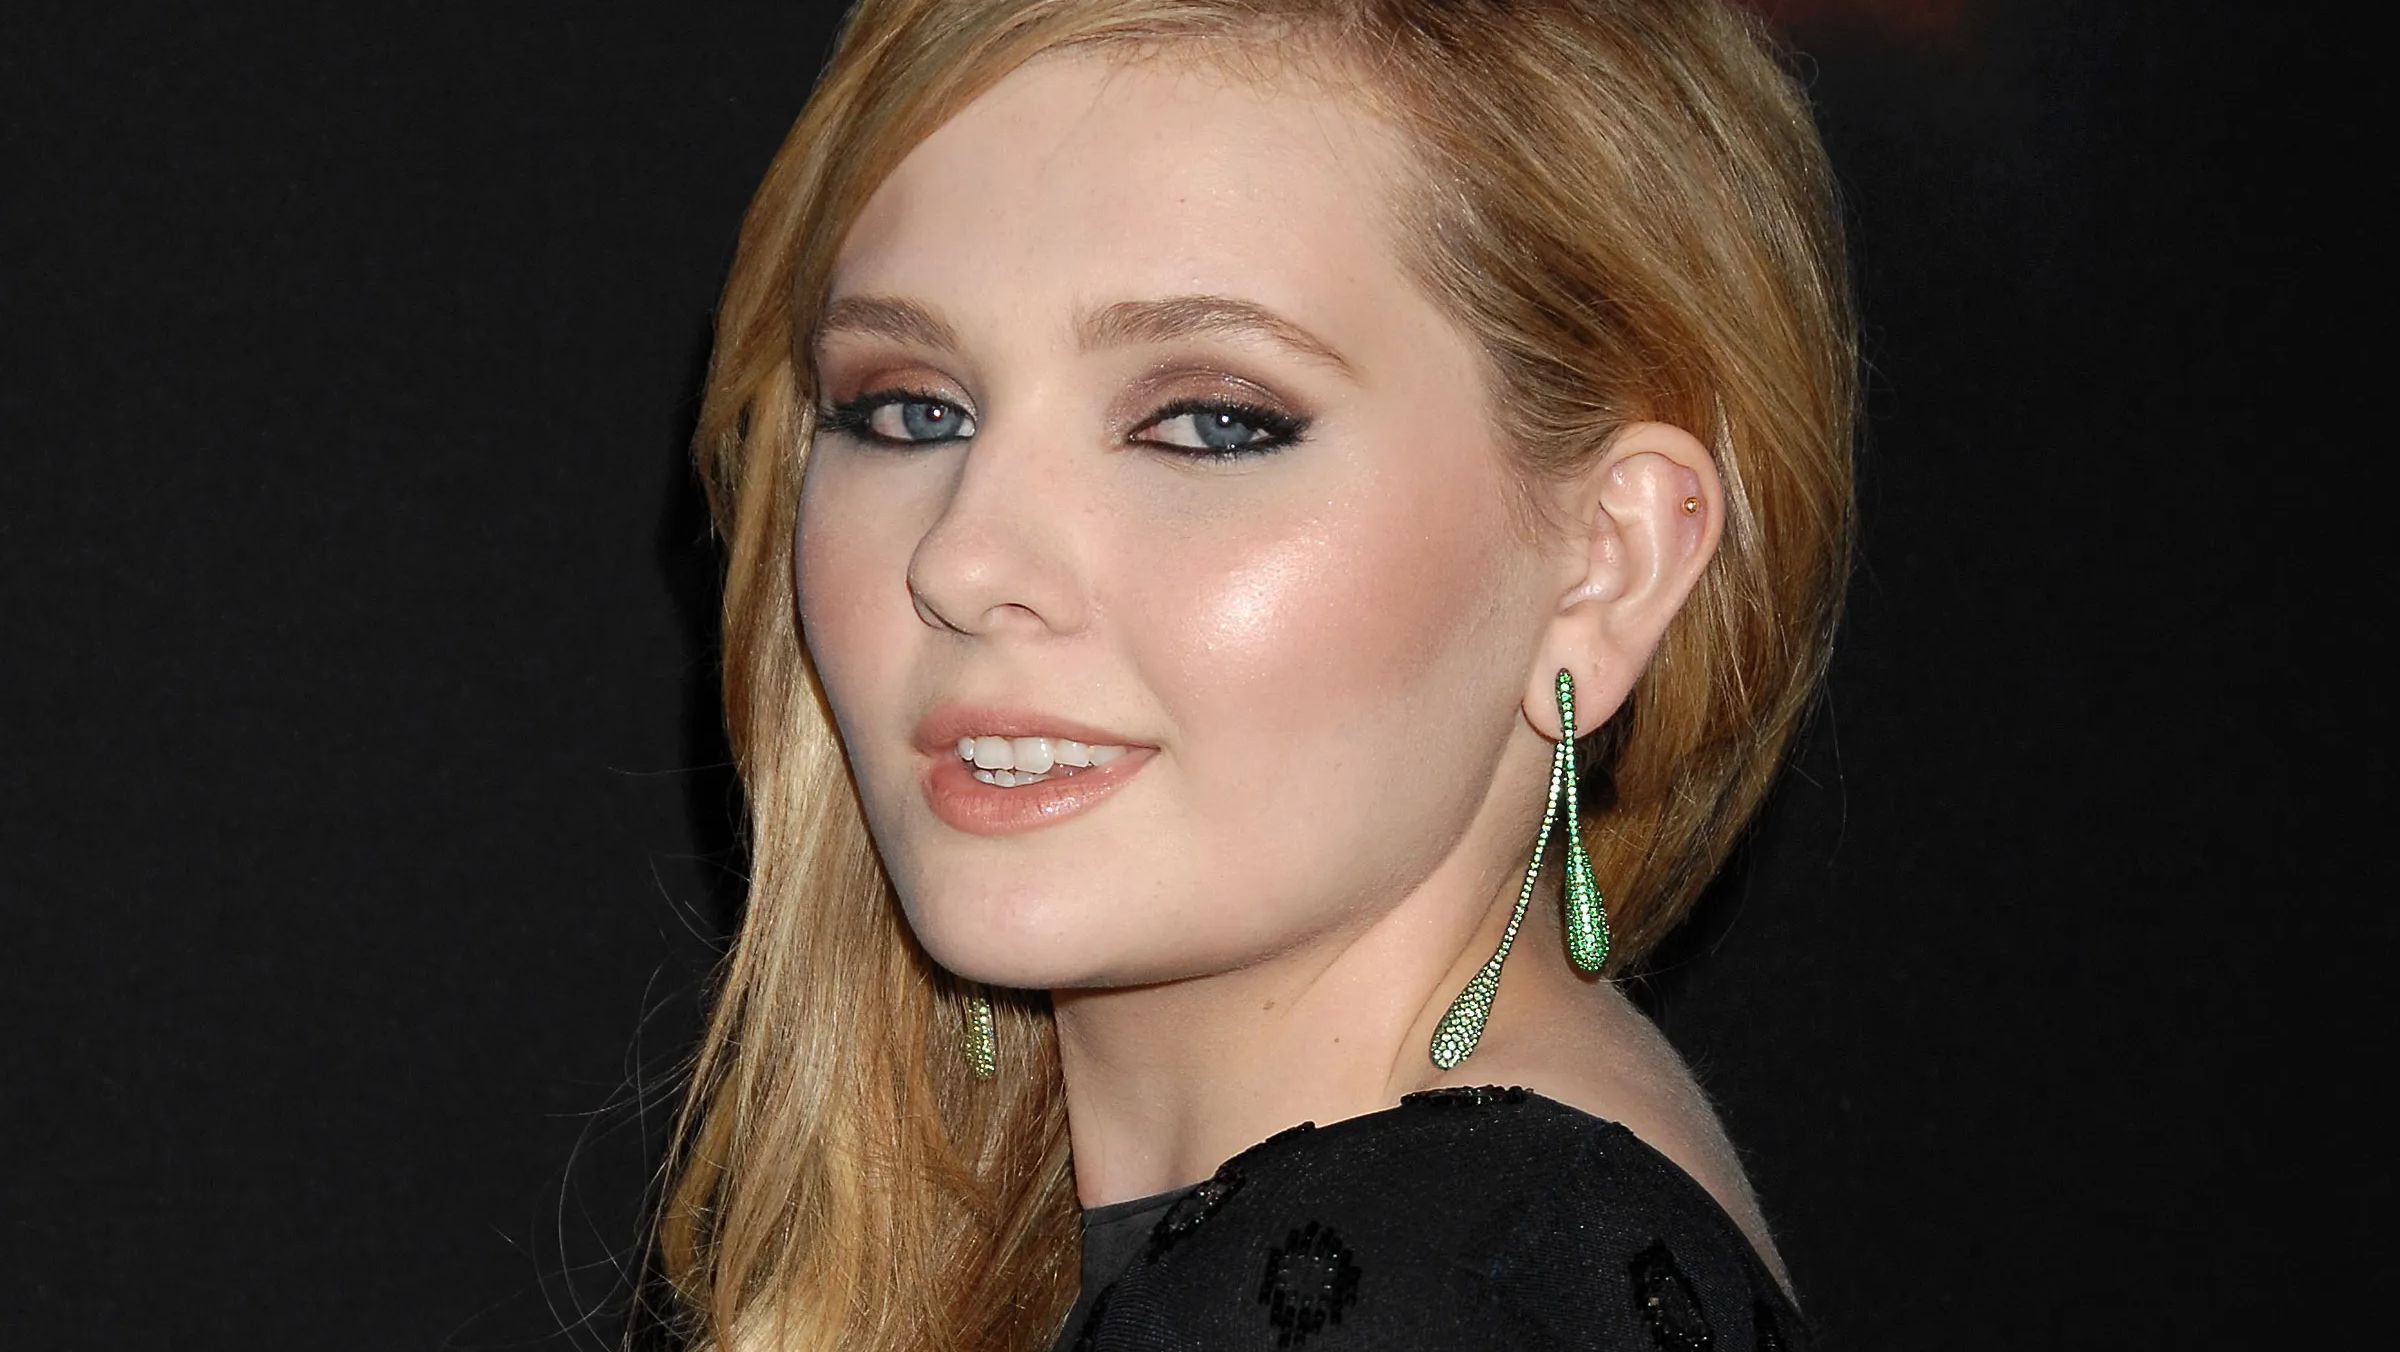 This is Abigail Breslin, all grown up